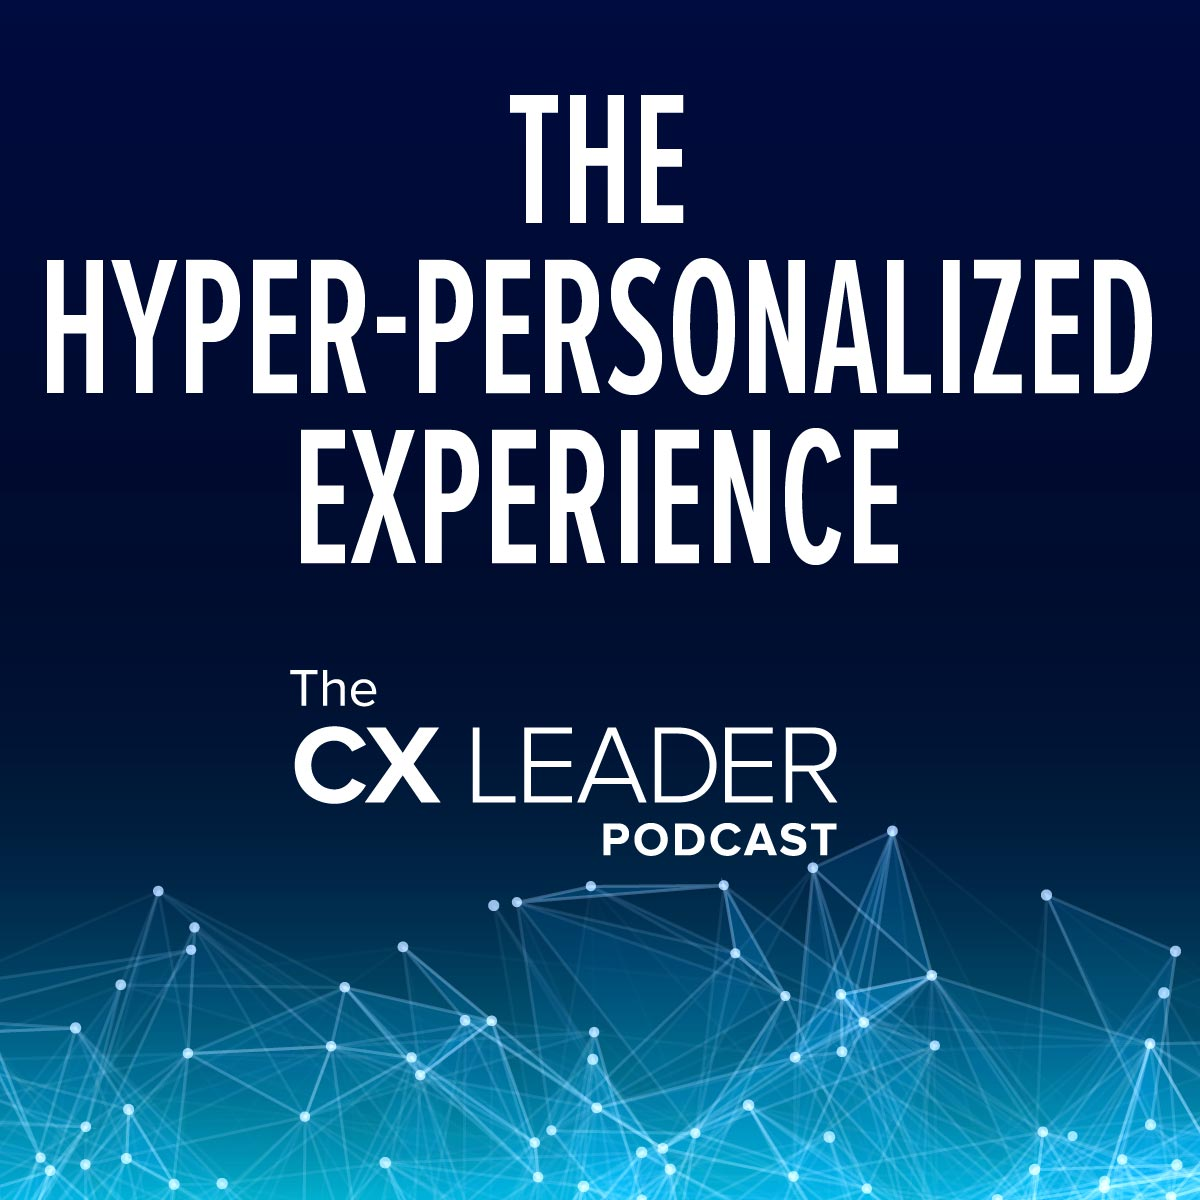 The Hyper-personalized Experience